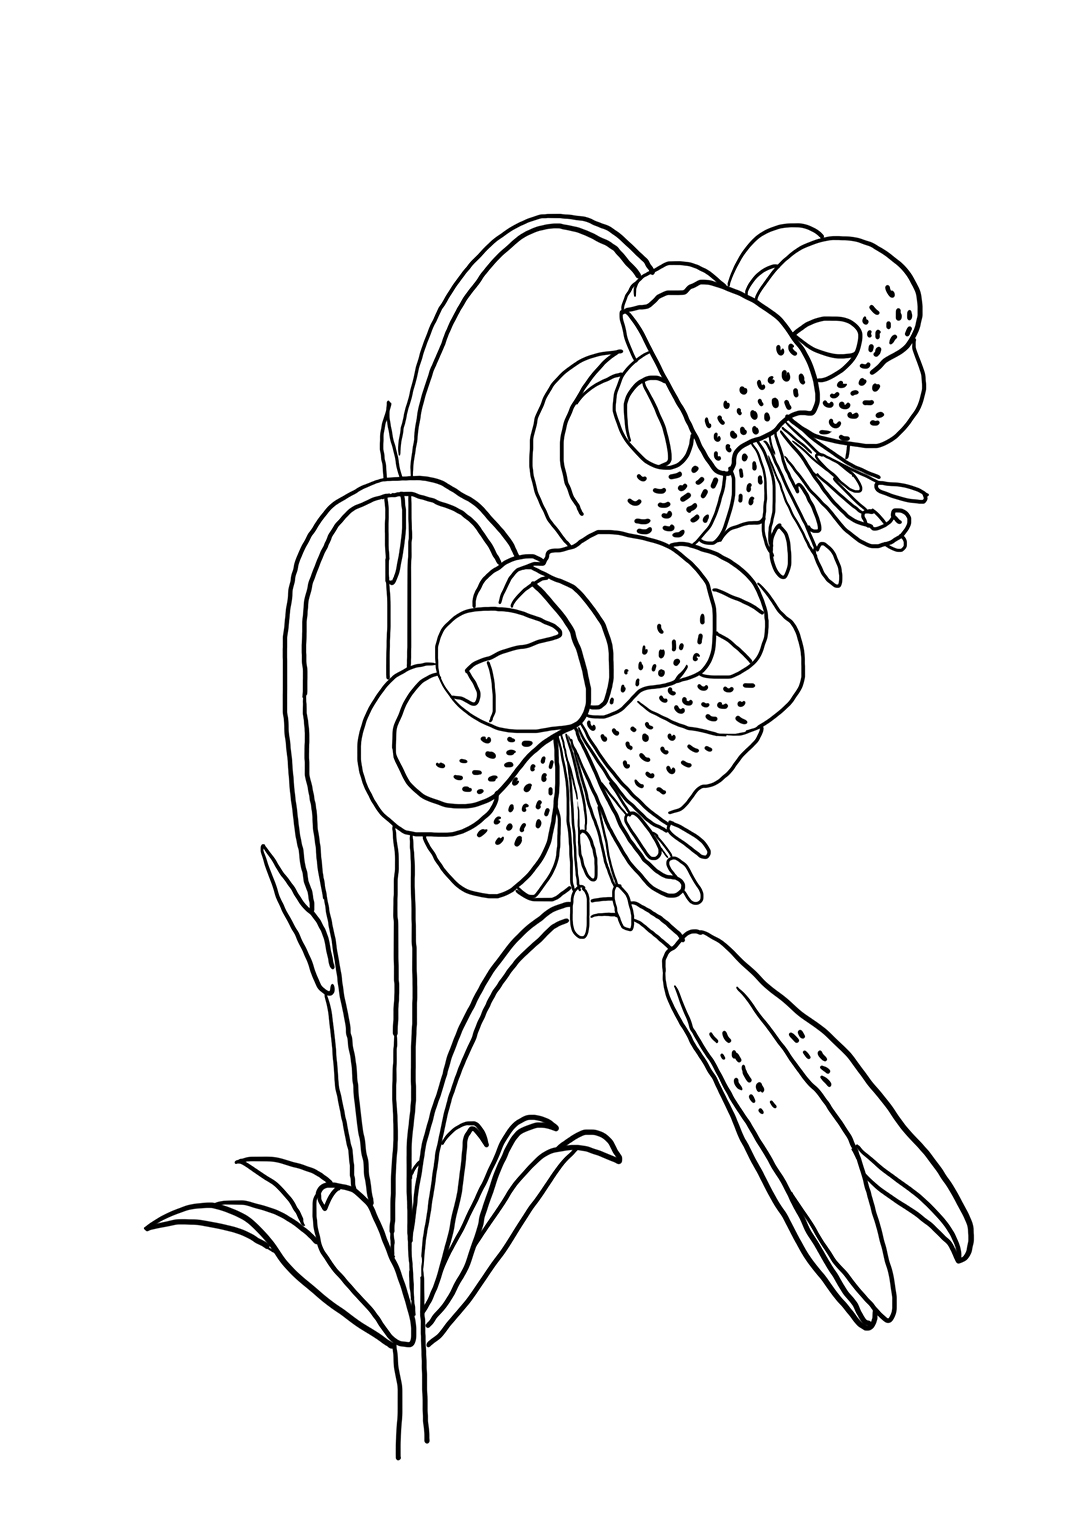 flower drawing to color